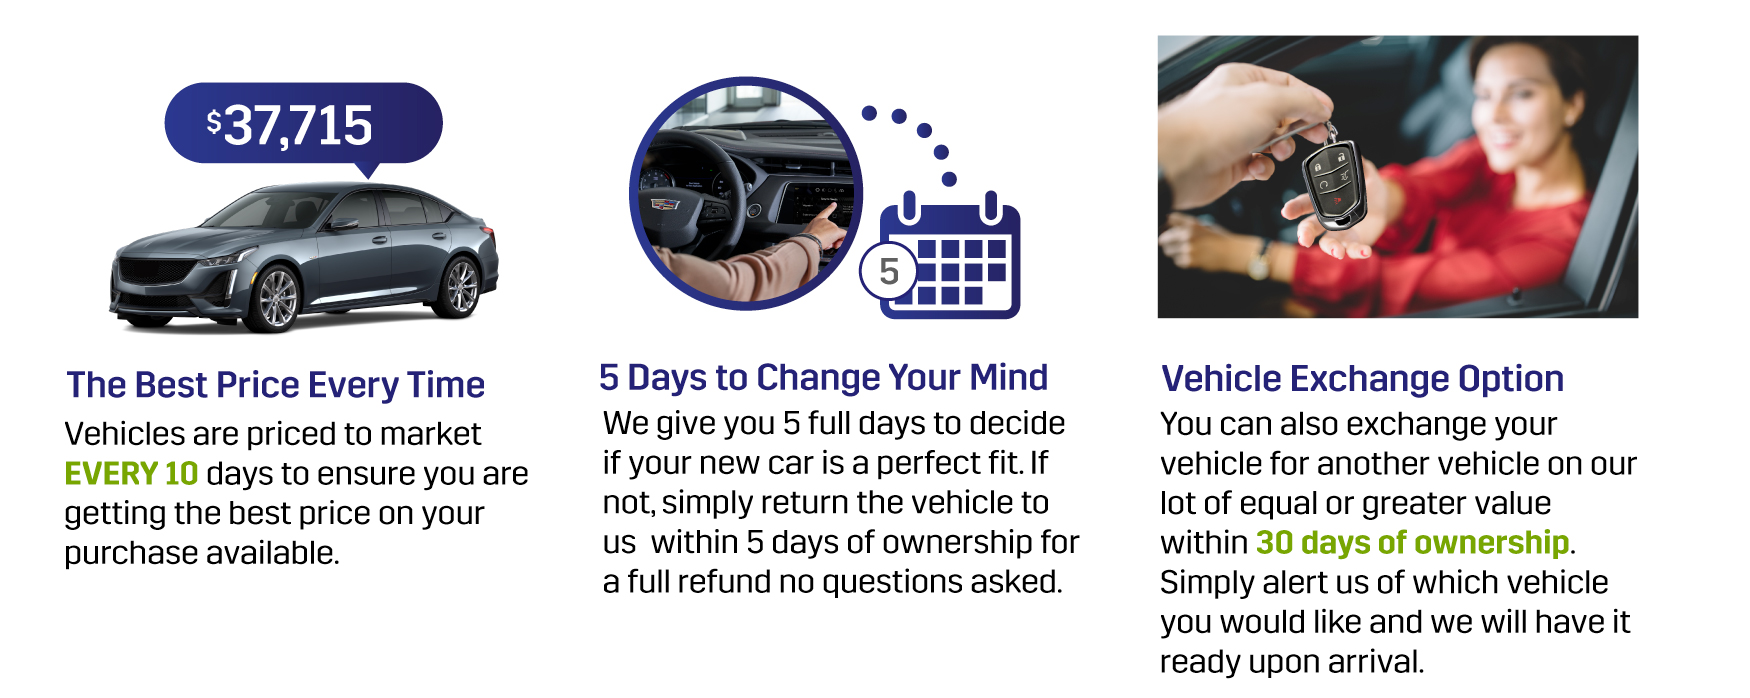 The Best Price Everytime, 5 Days to Change Your Mind, Vehicle Exchange Option